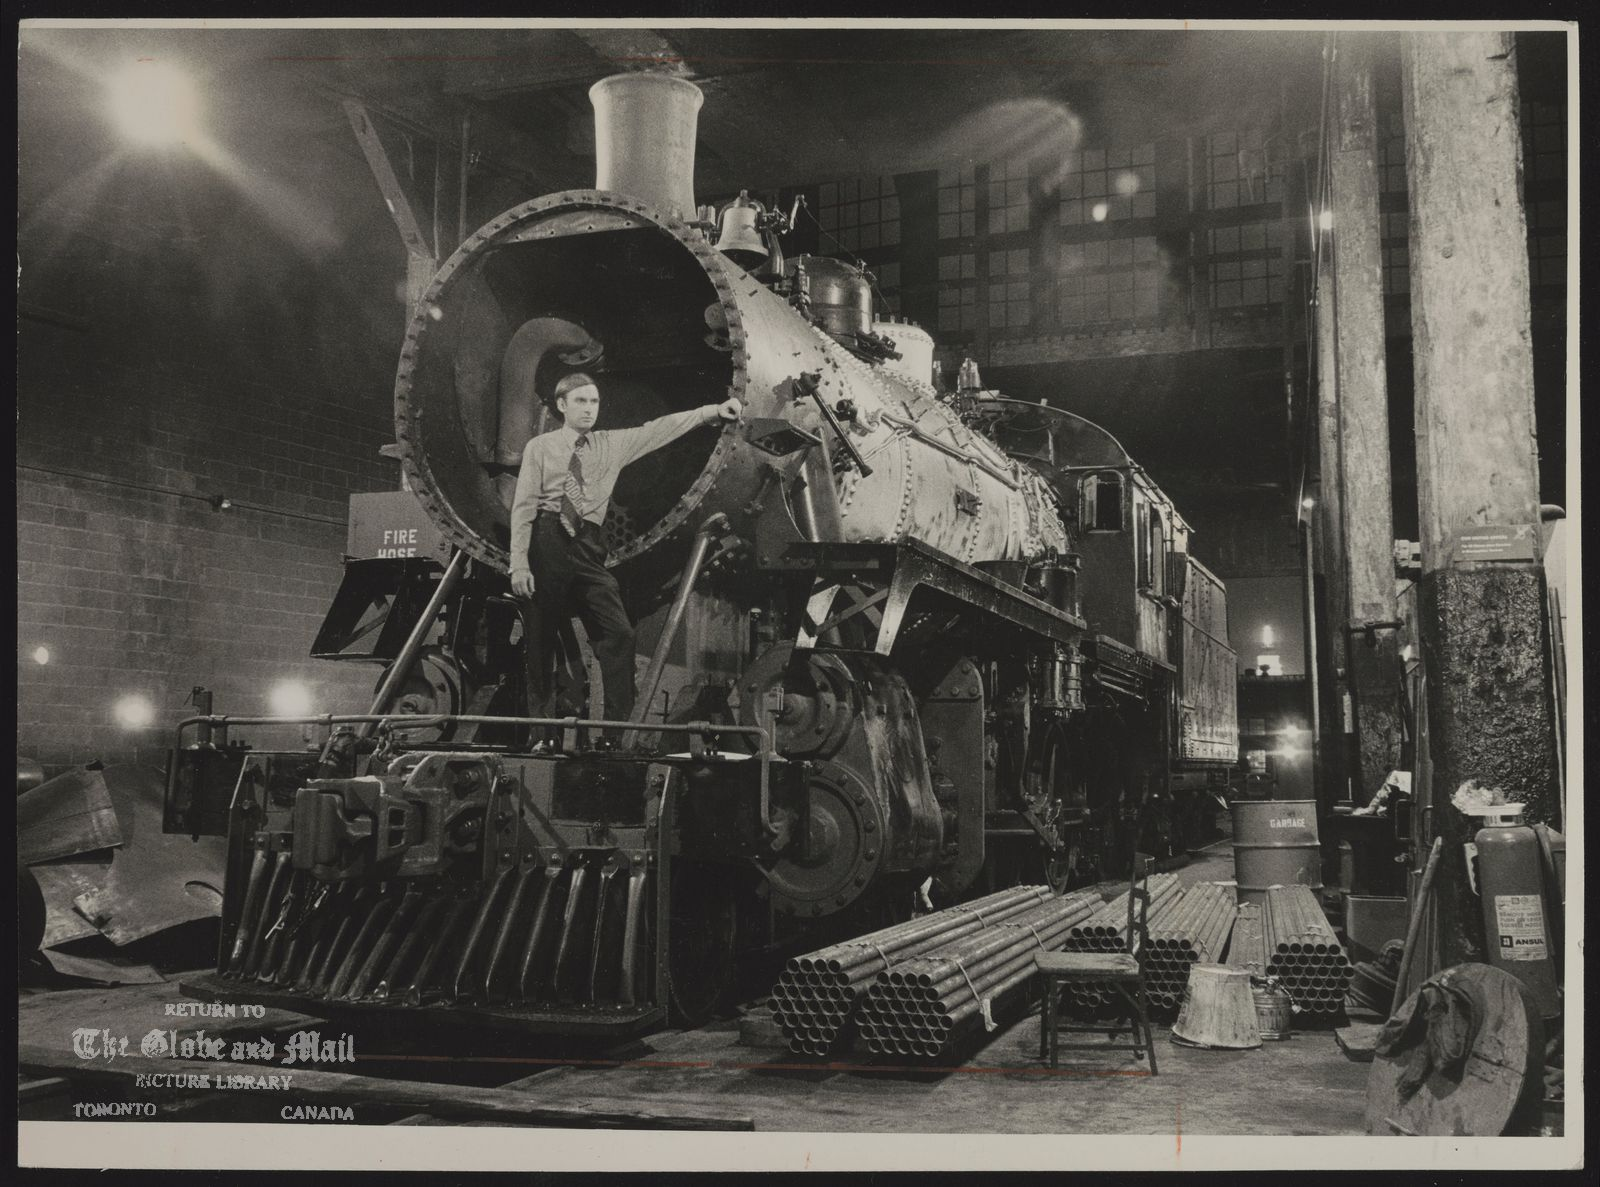 RAILWAYS Historical (Canadian Pacific locomotive No. 1057 in the roundhouse under renovation by members of the Ontario Rail Association.)